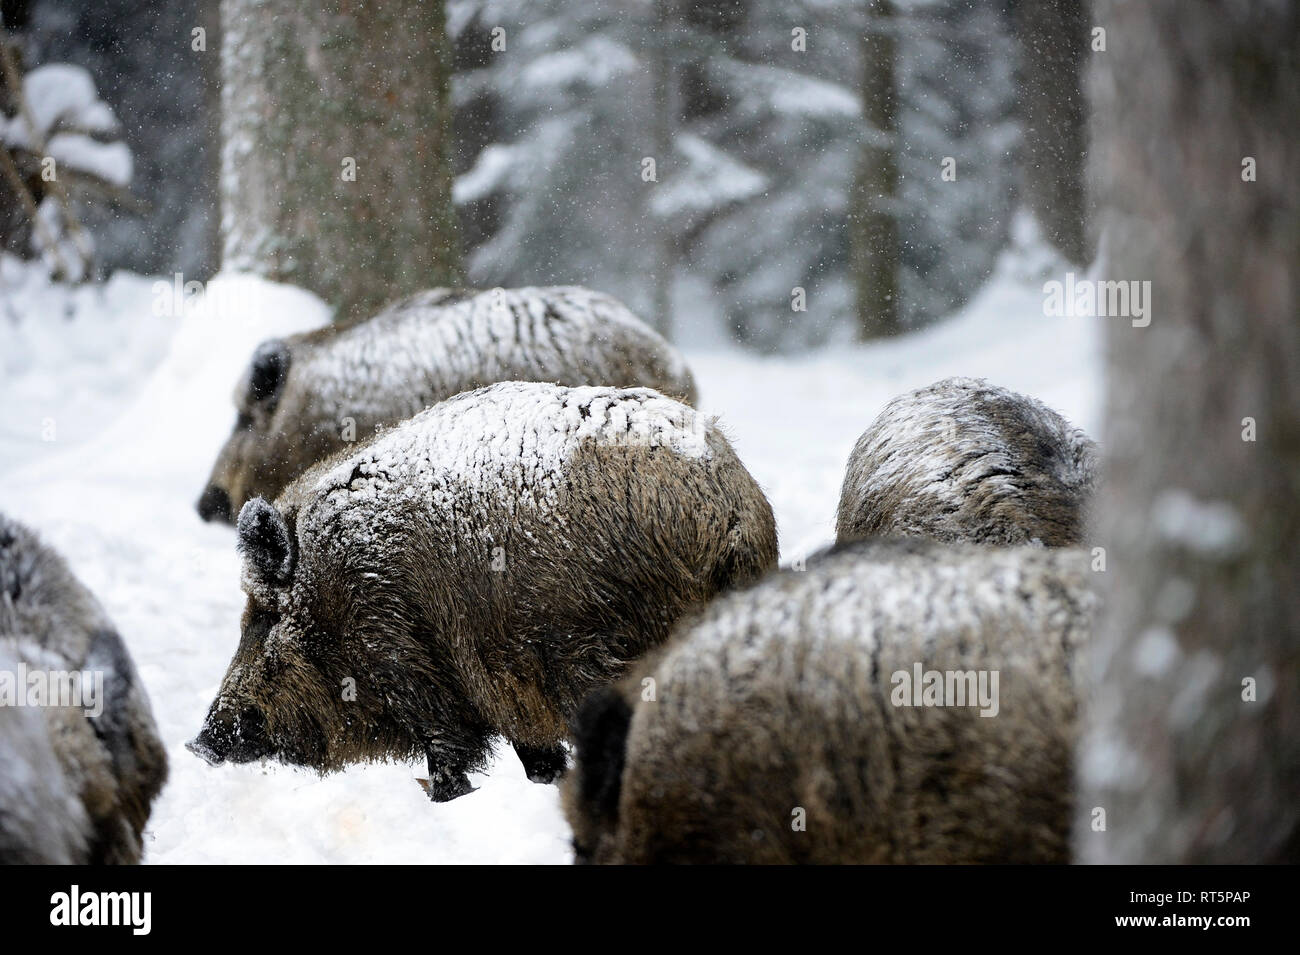 Wild boar, Sus scrofa scrofa, sow, making a mess, wild boars, black game, black smock, cloven-hoofed animal, pigs, pig, vertebrates, mammals, real pig Stock Photo